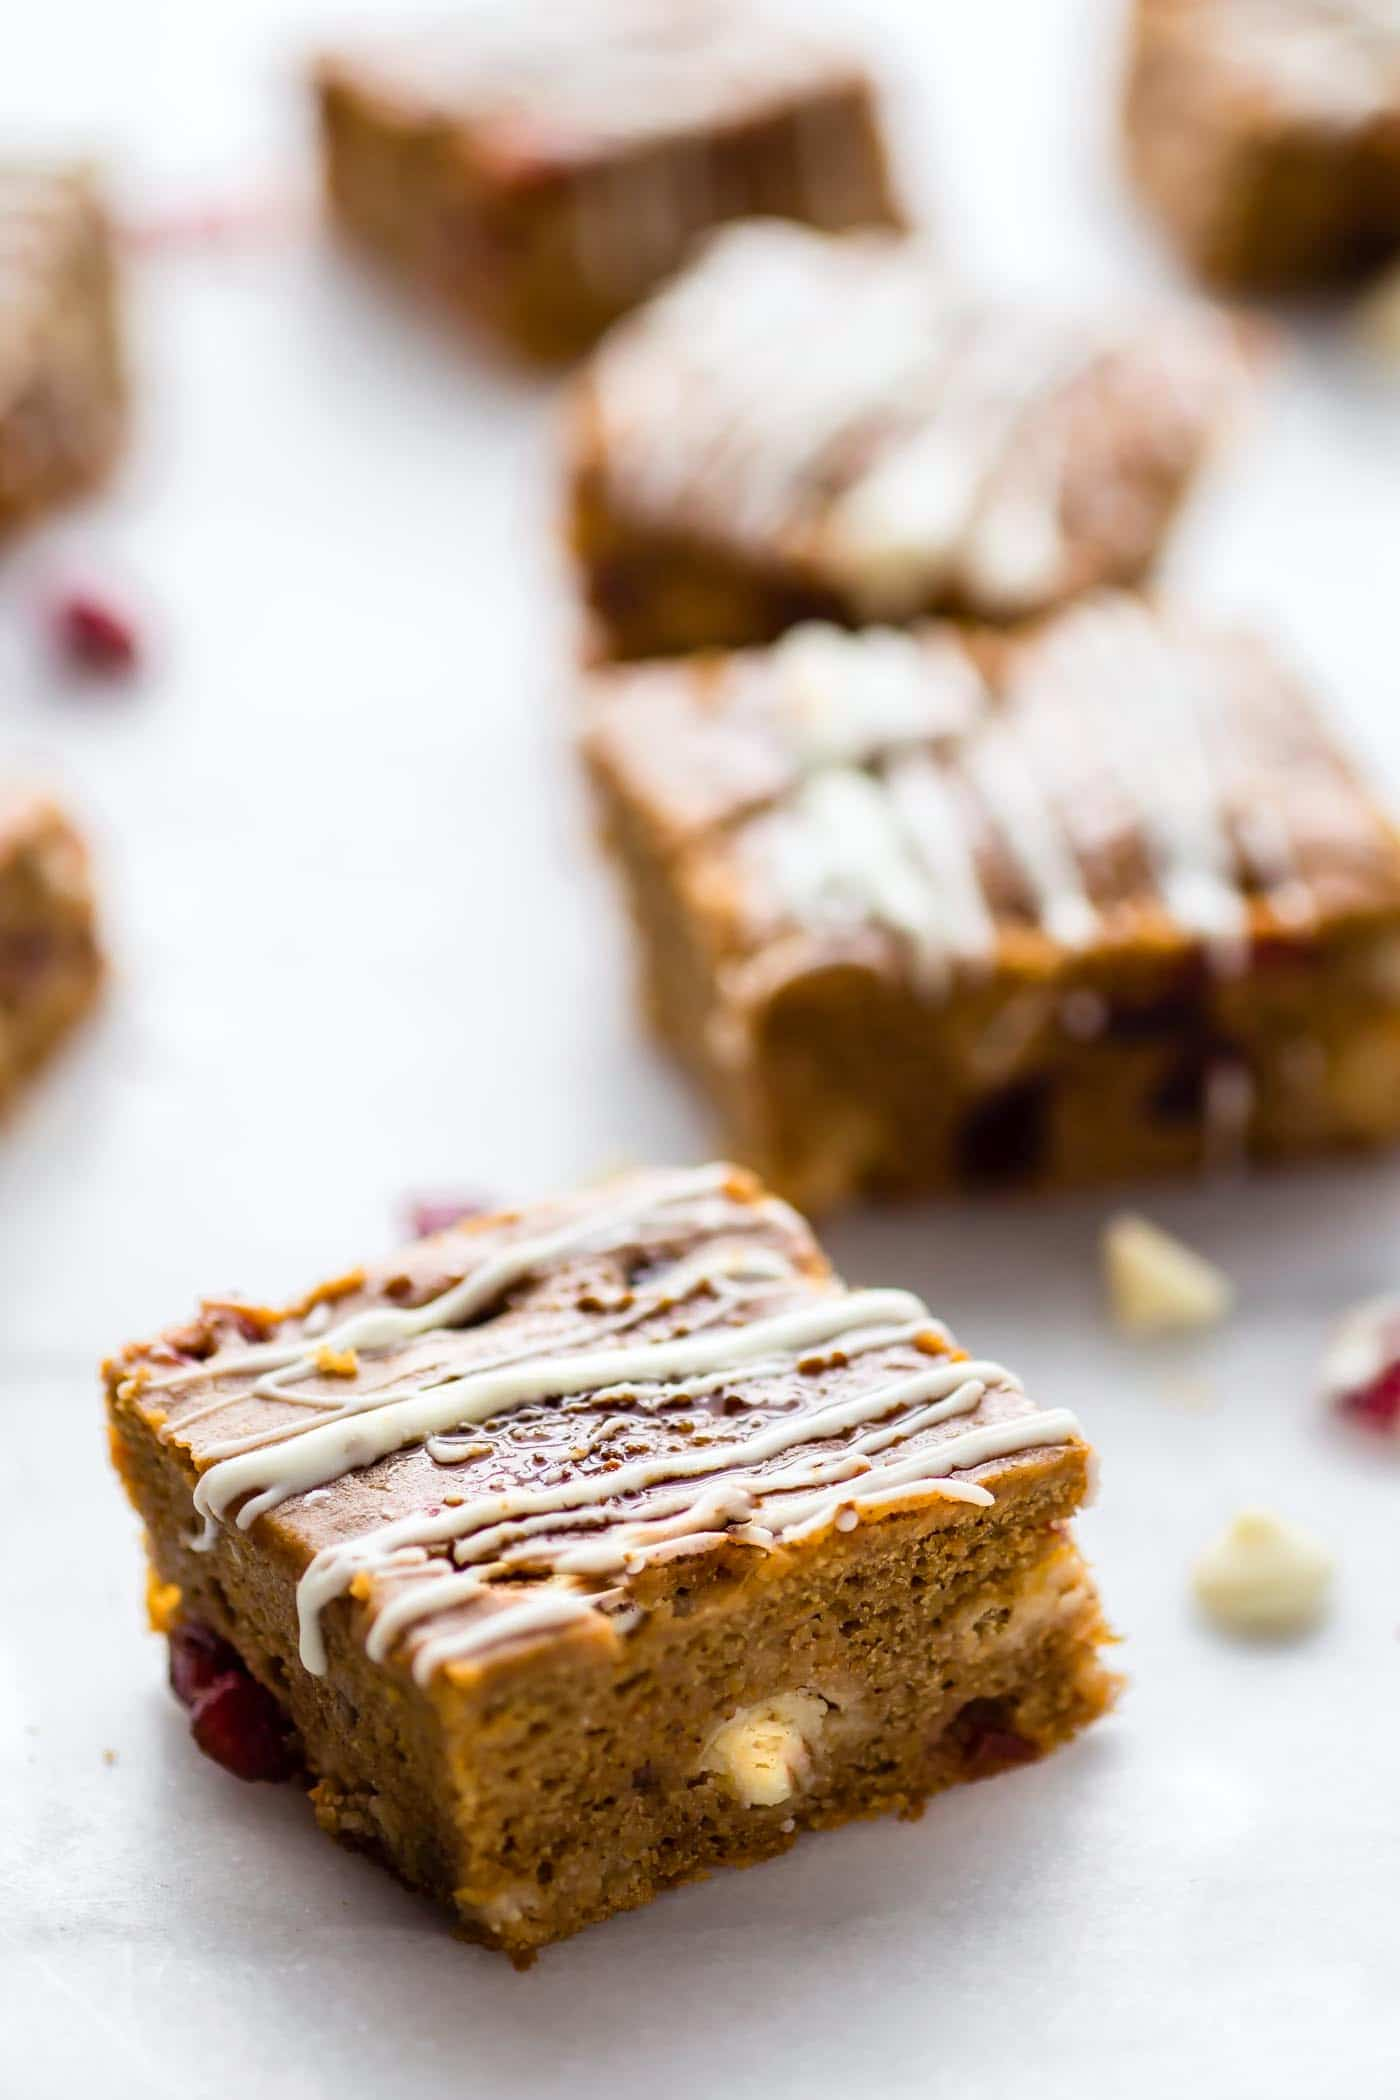 dessert bars with white chocolate, cranberries, and pumpkin